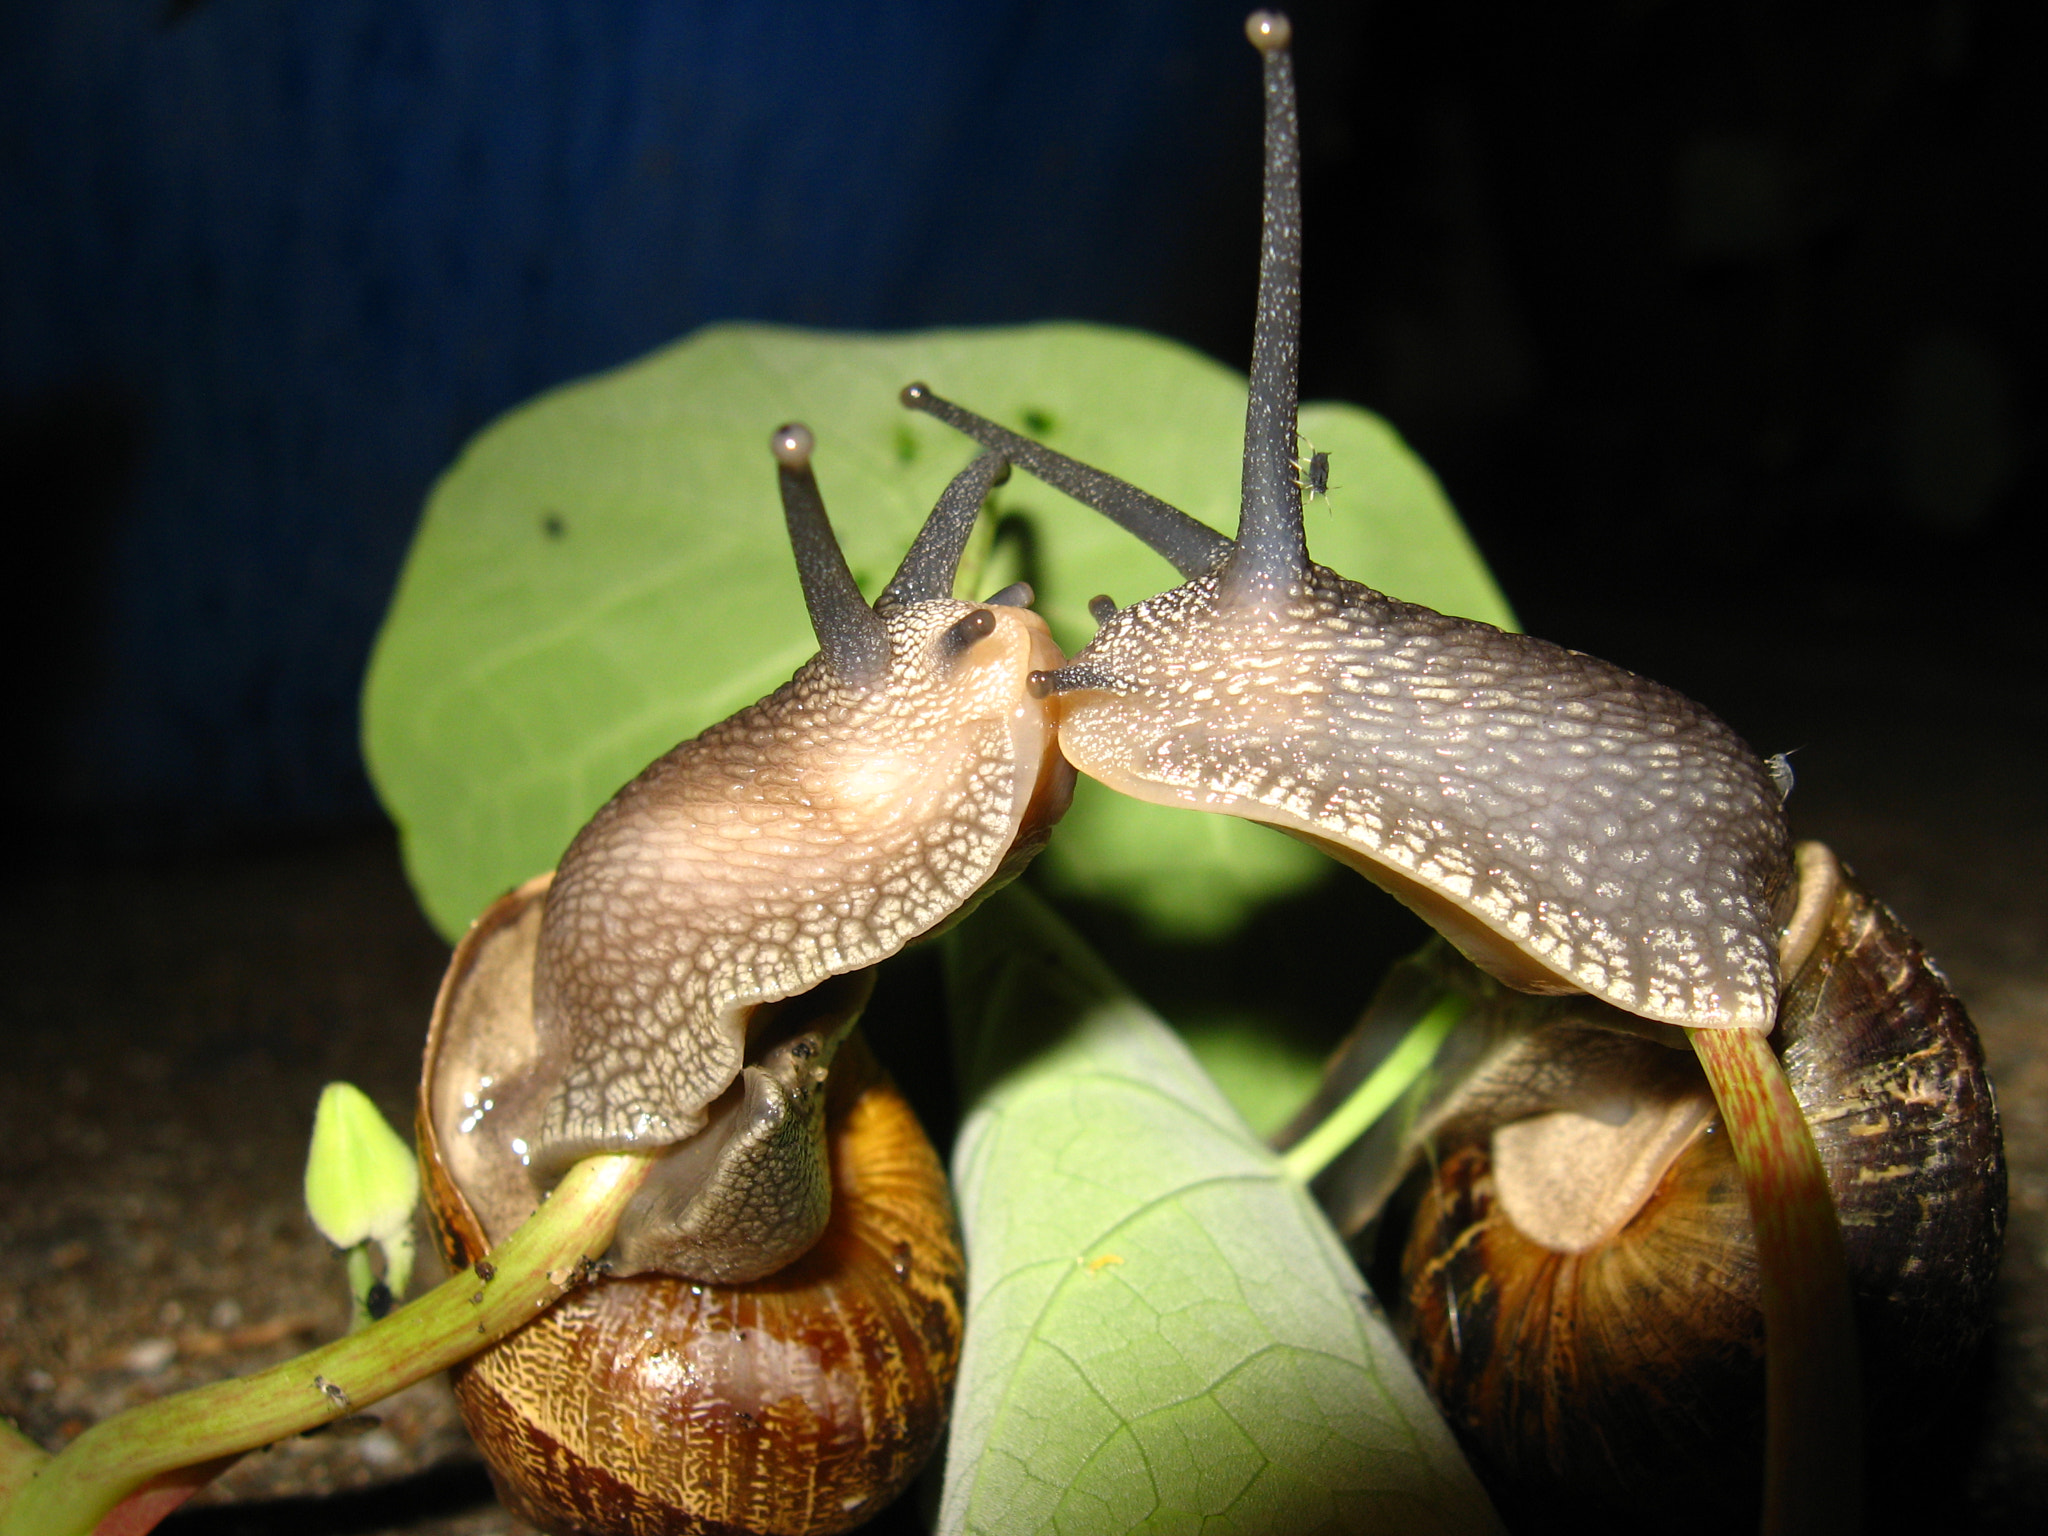 Photograph Snails Kissing by Andrew Allan on 500px